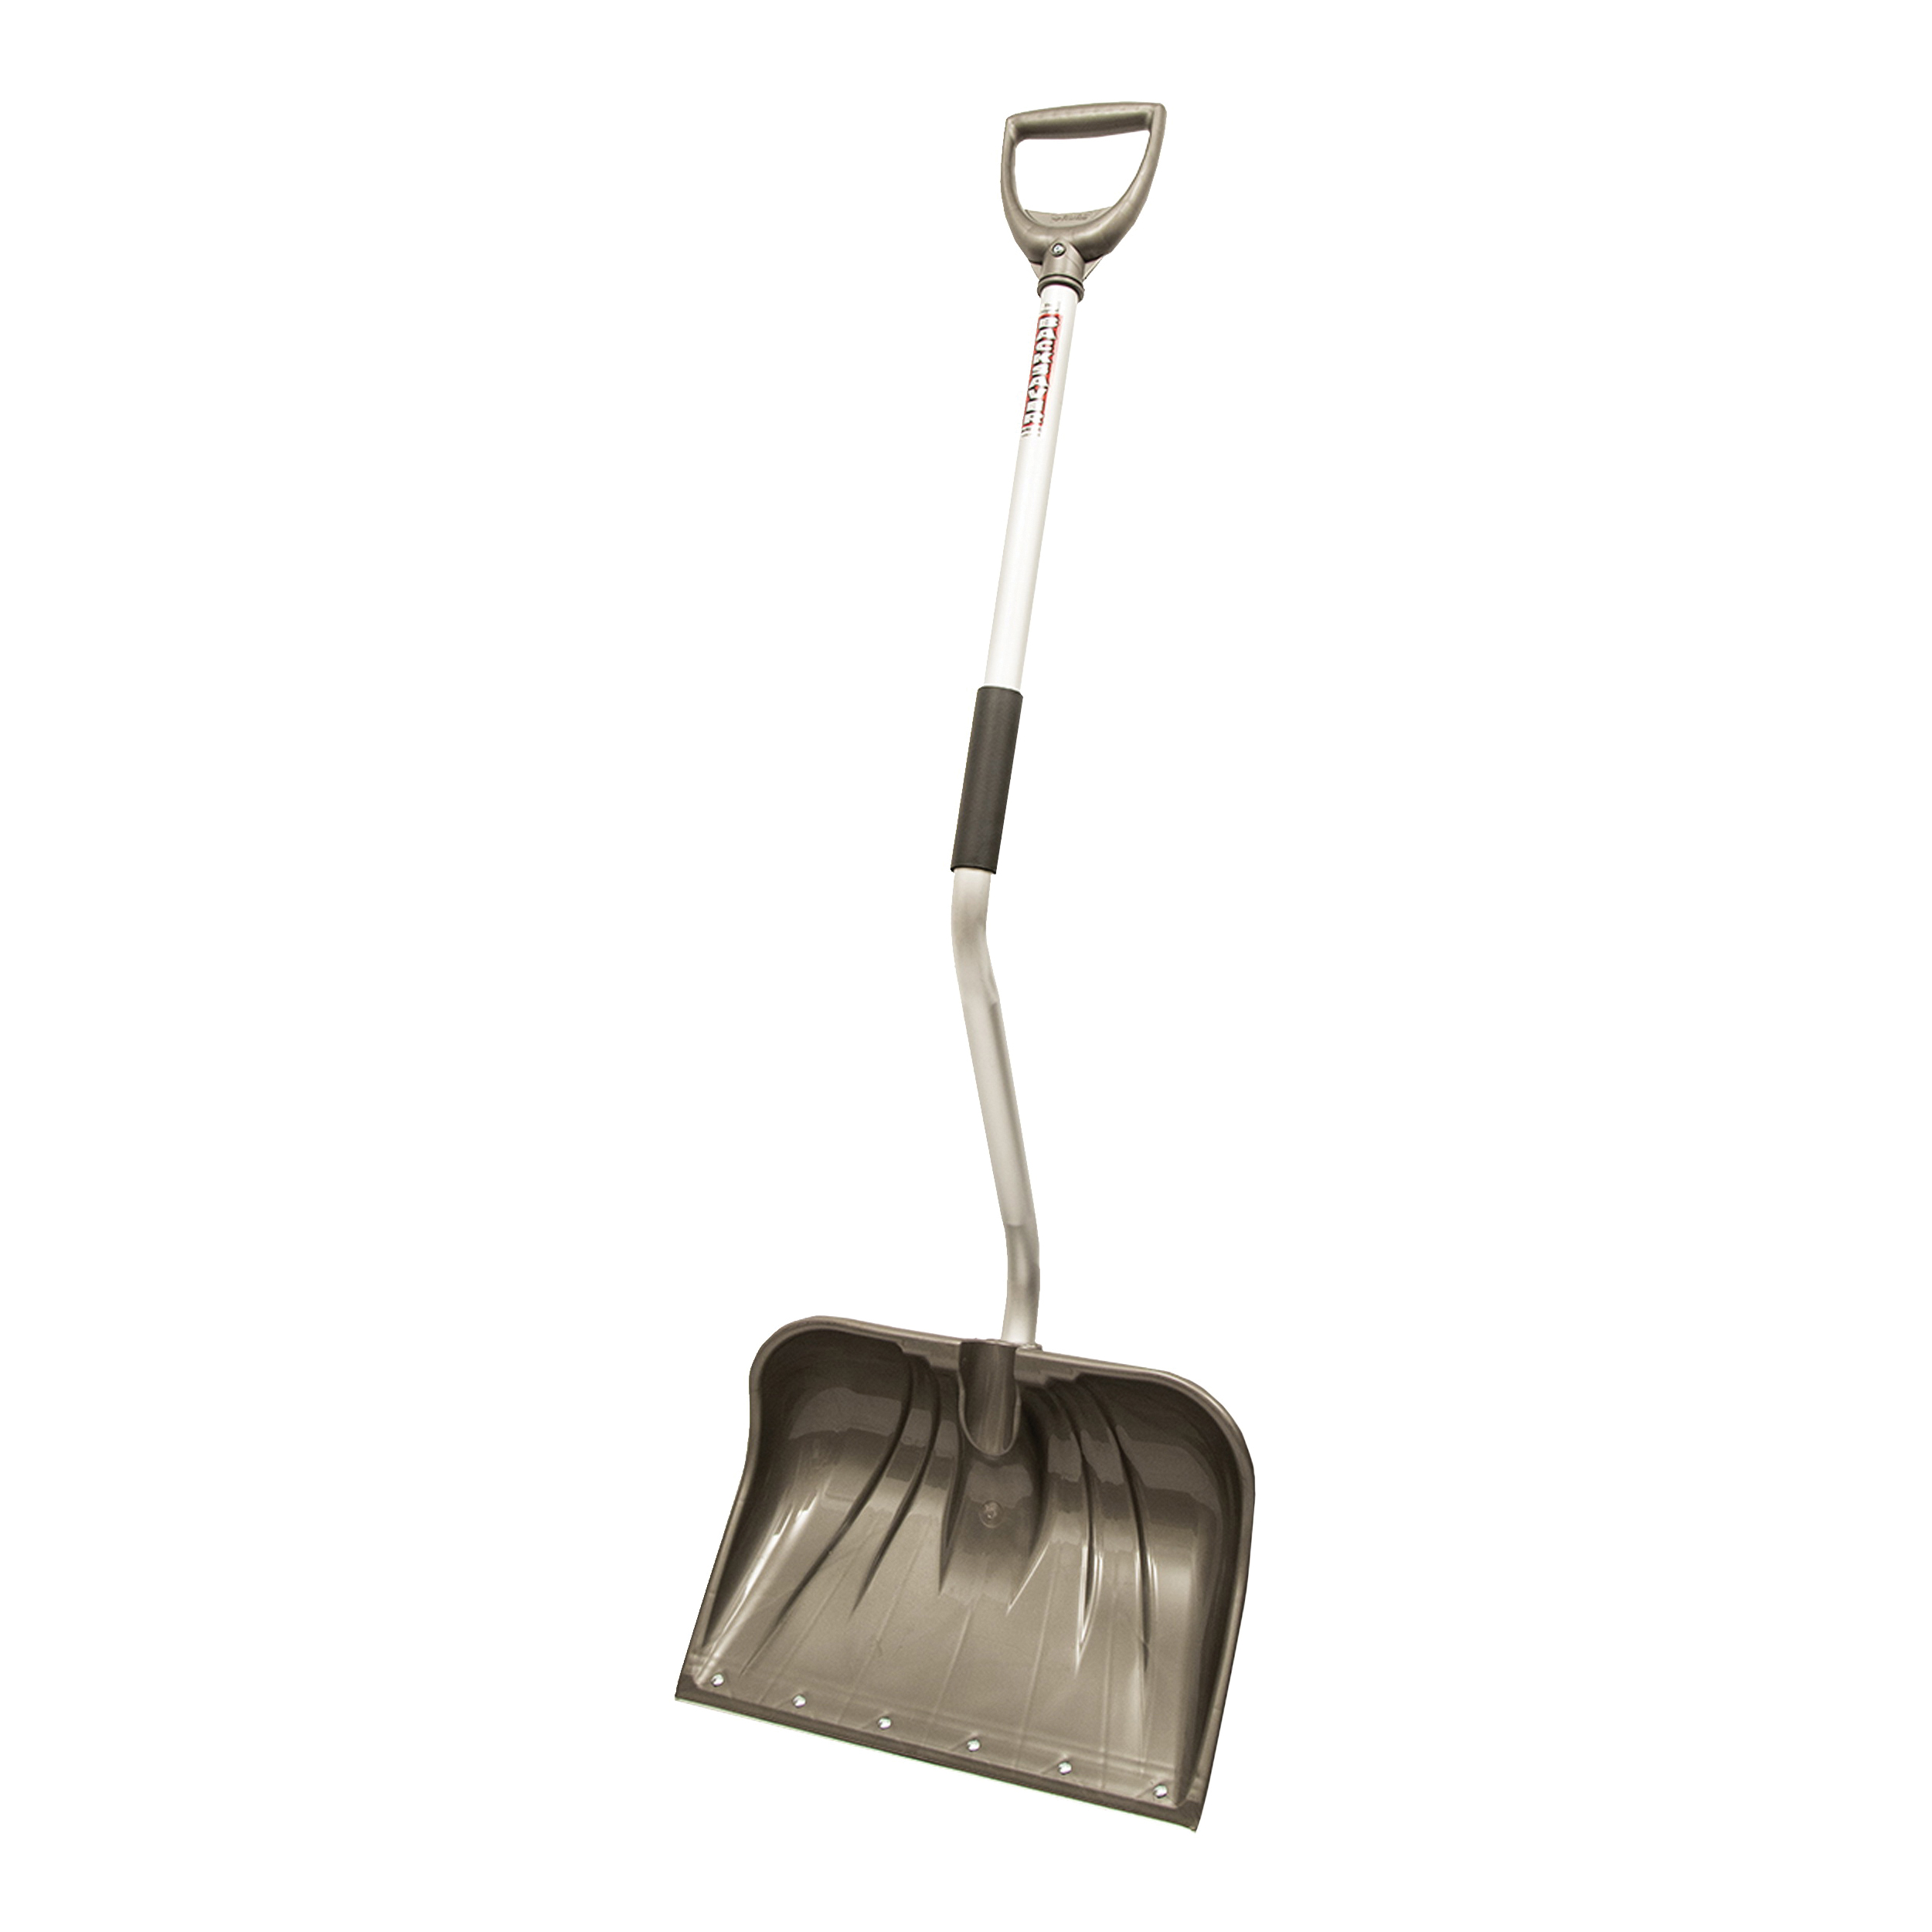 Picture of RUGG Lite-Wate 26PBSLW-S Snow Shovel and Pusher, 18 in W Blade, Polyethylene Blade, Aluminum Handle, D-Shaped Handle